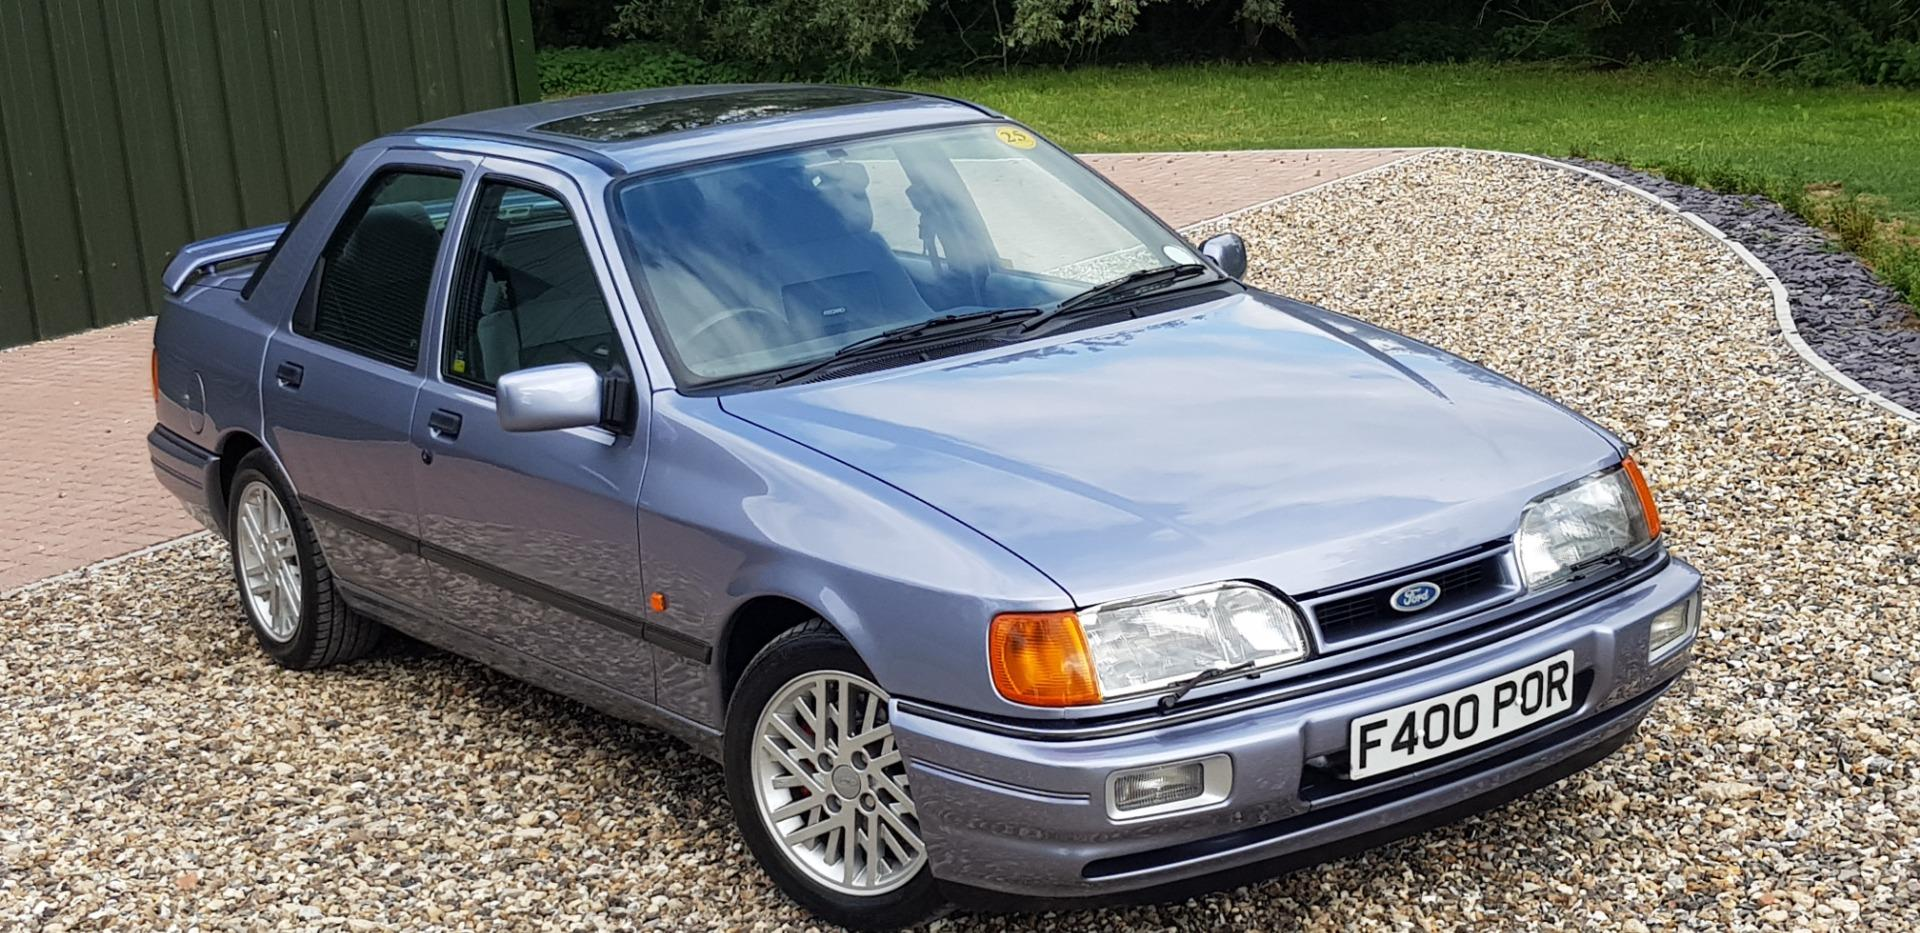 1989 Ford Sierra Sapphire RS Cosworth  Chassis no. WFOFXXBFJE41586